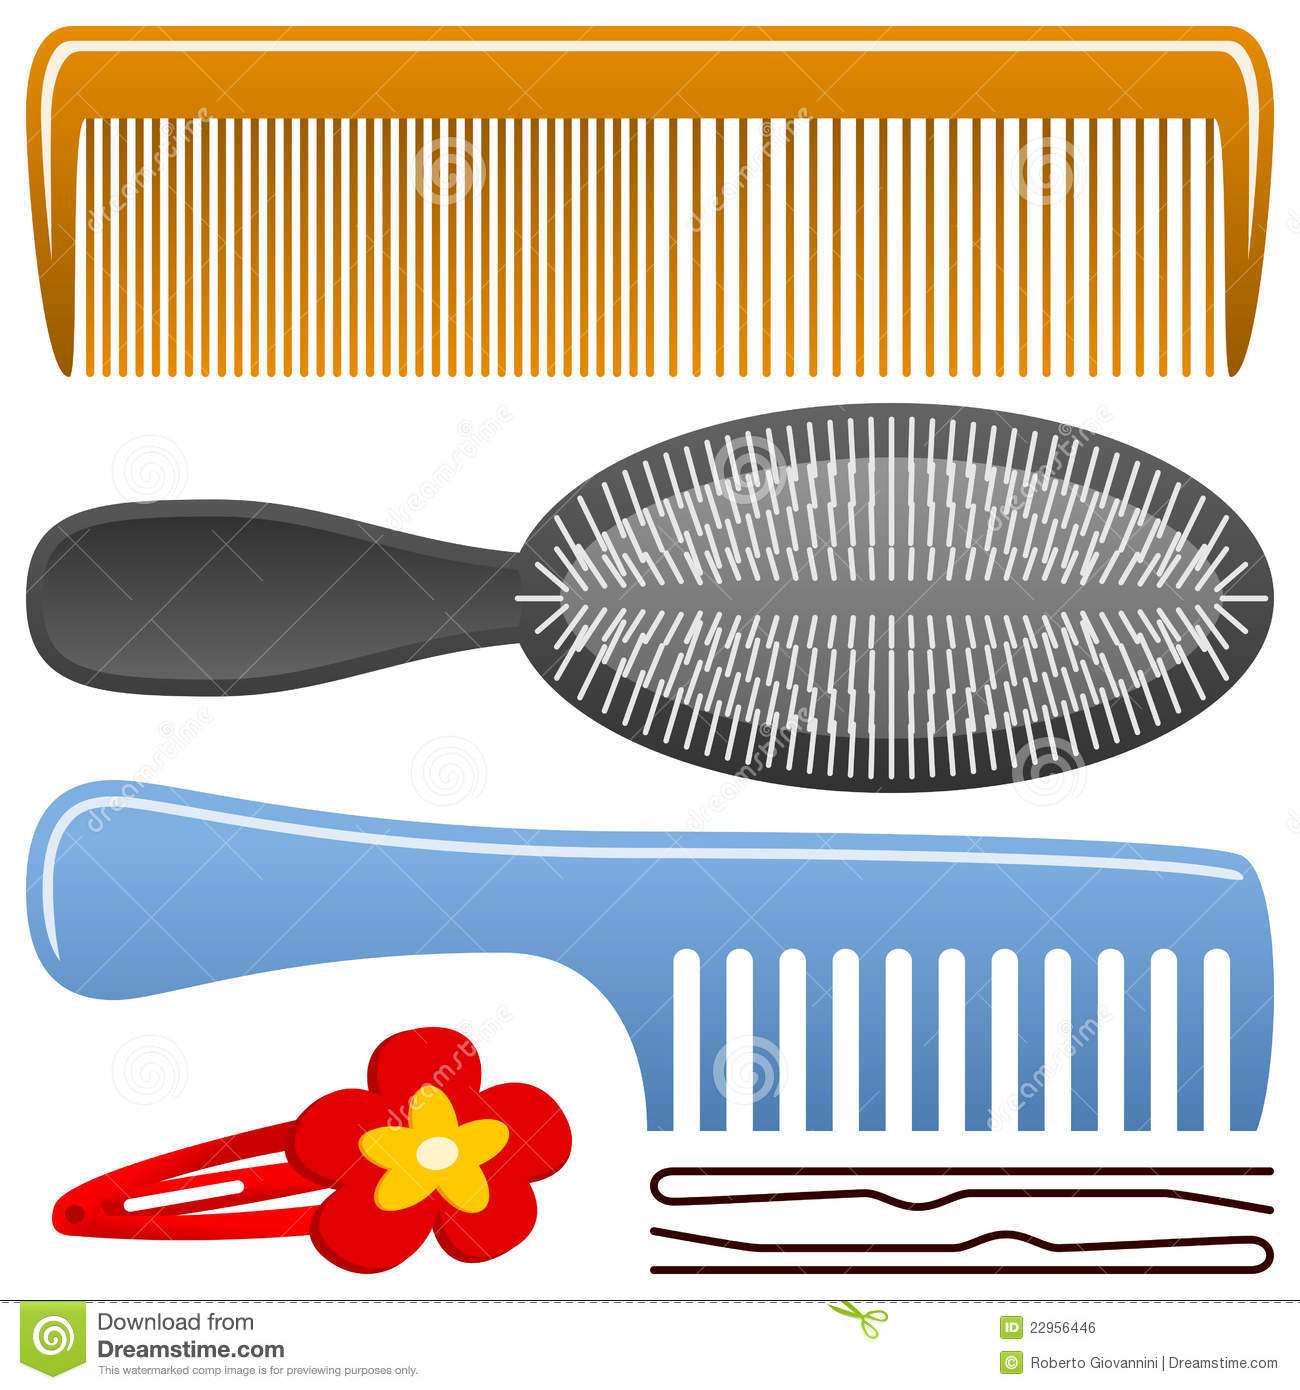 Hairbrush Stock Illustrations – 1,760 Hairbrush Stock ...